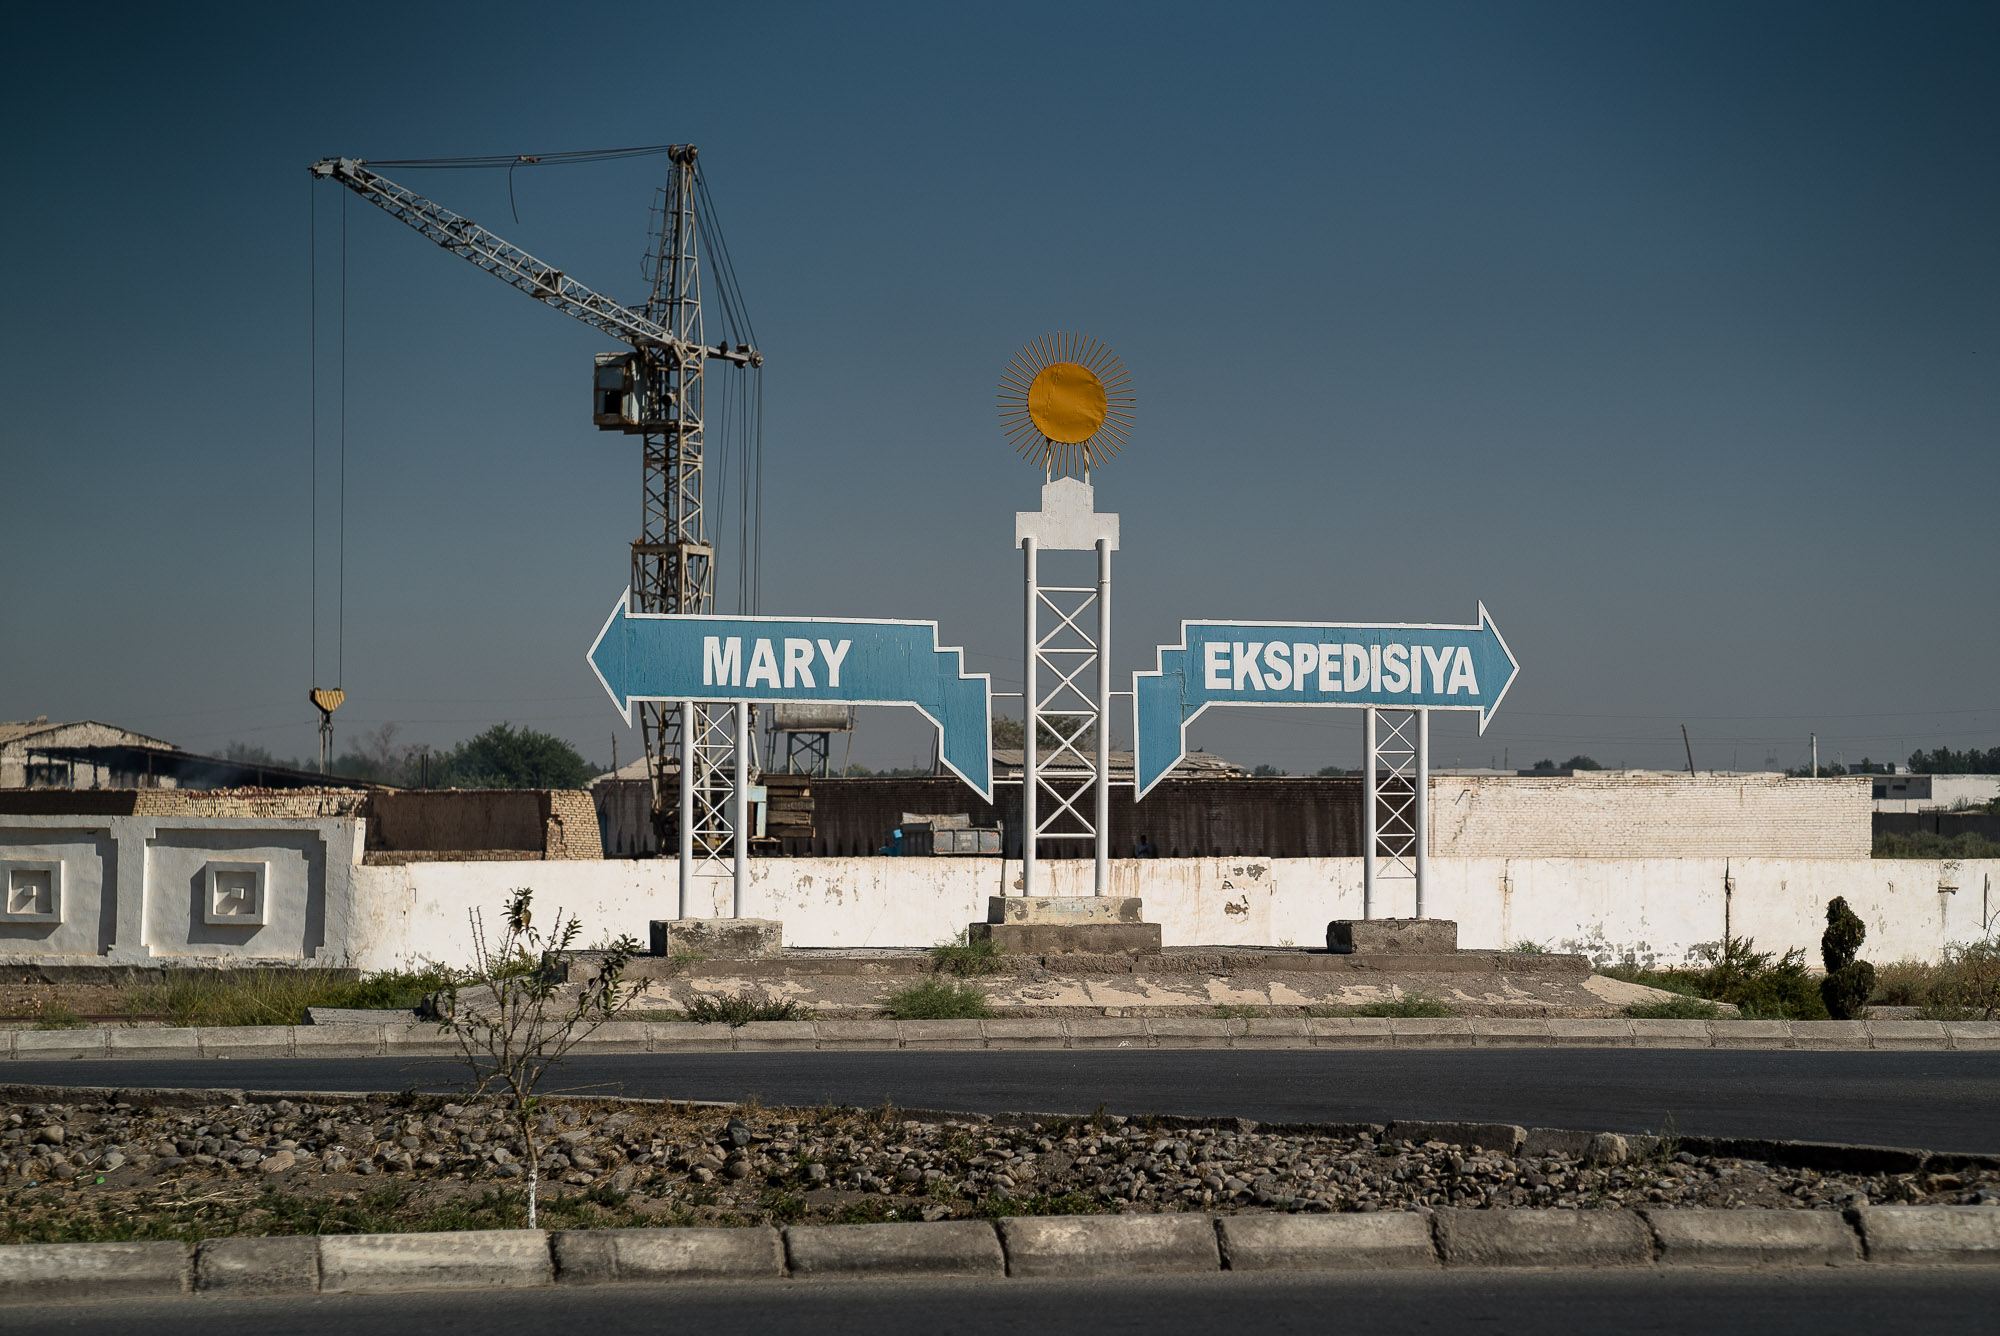 Mary or Ekspedisiya